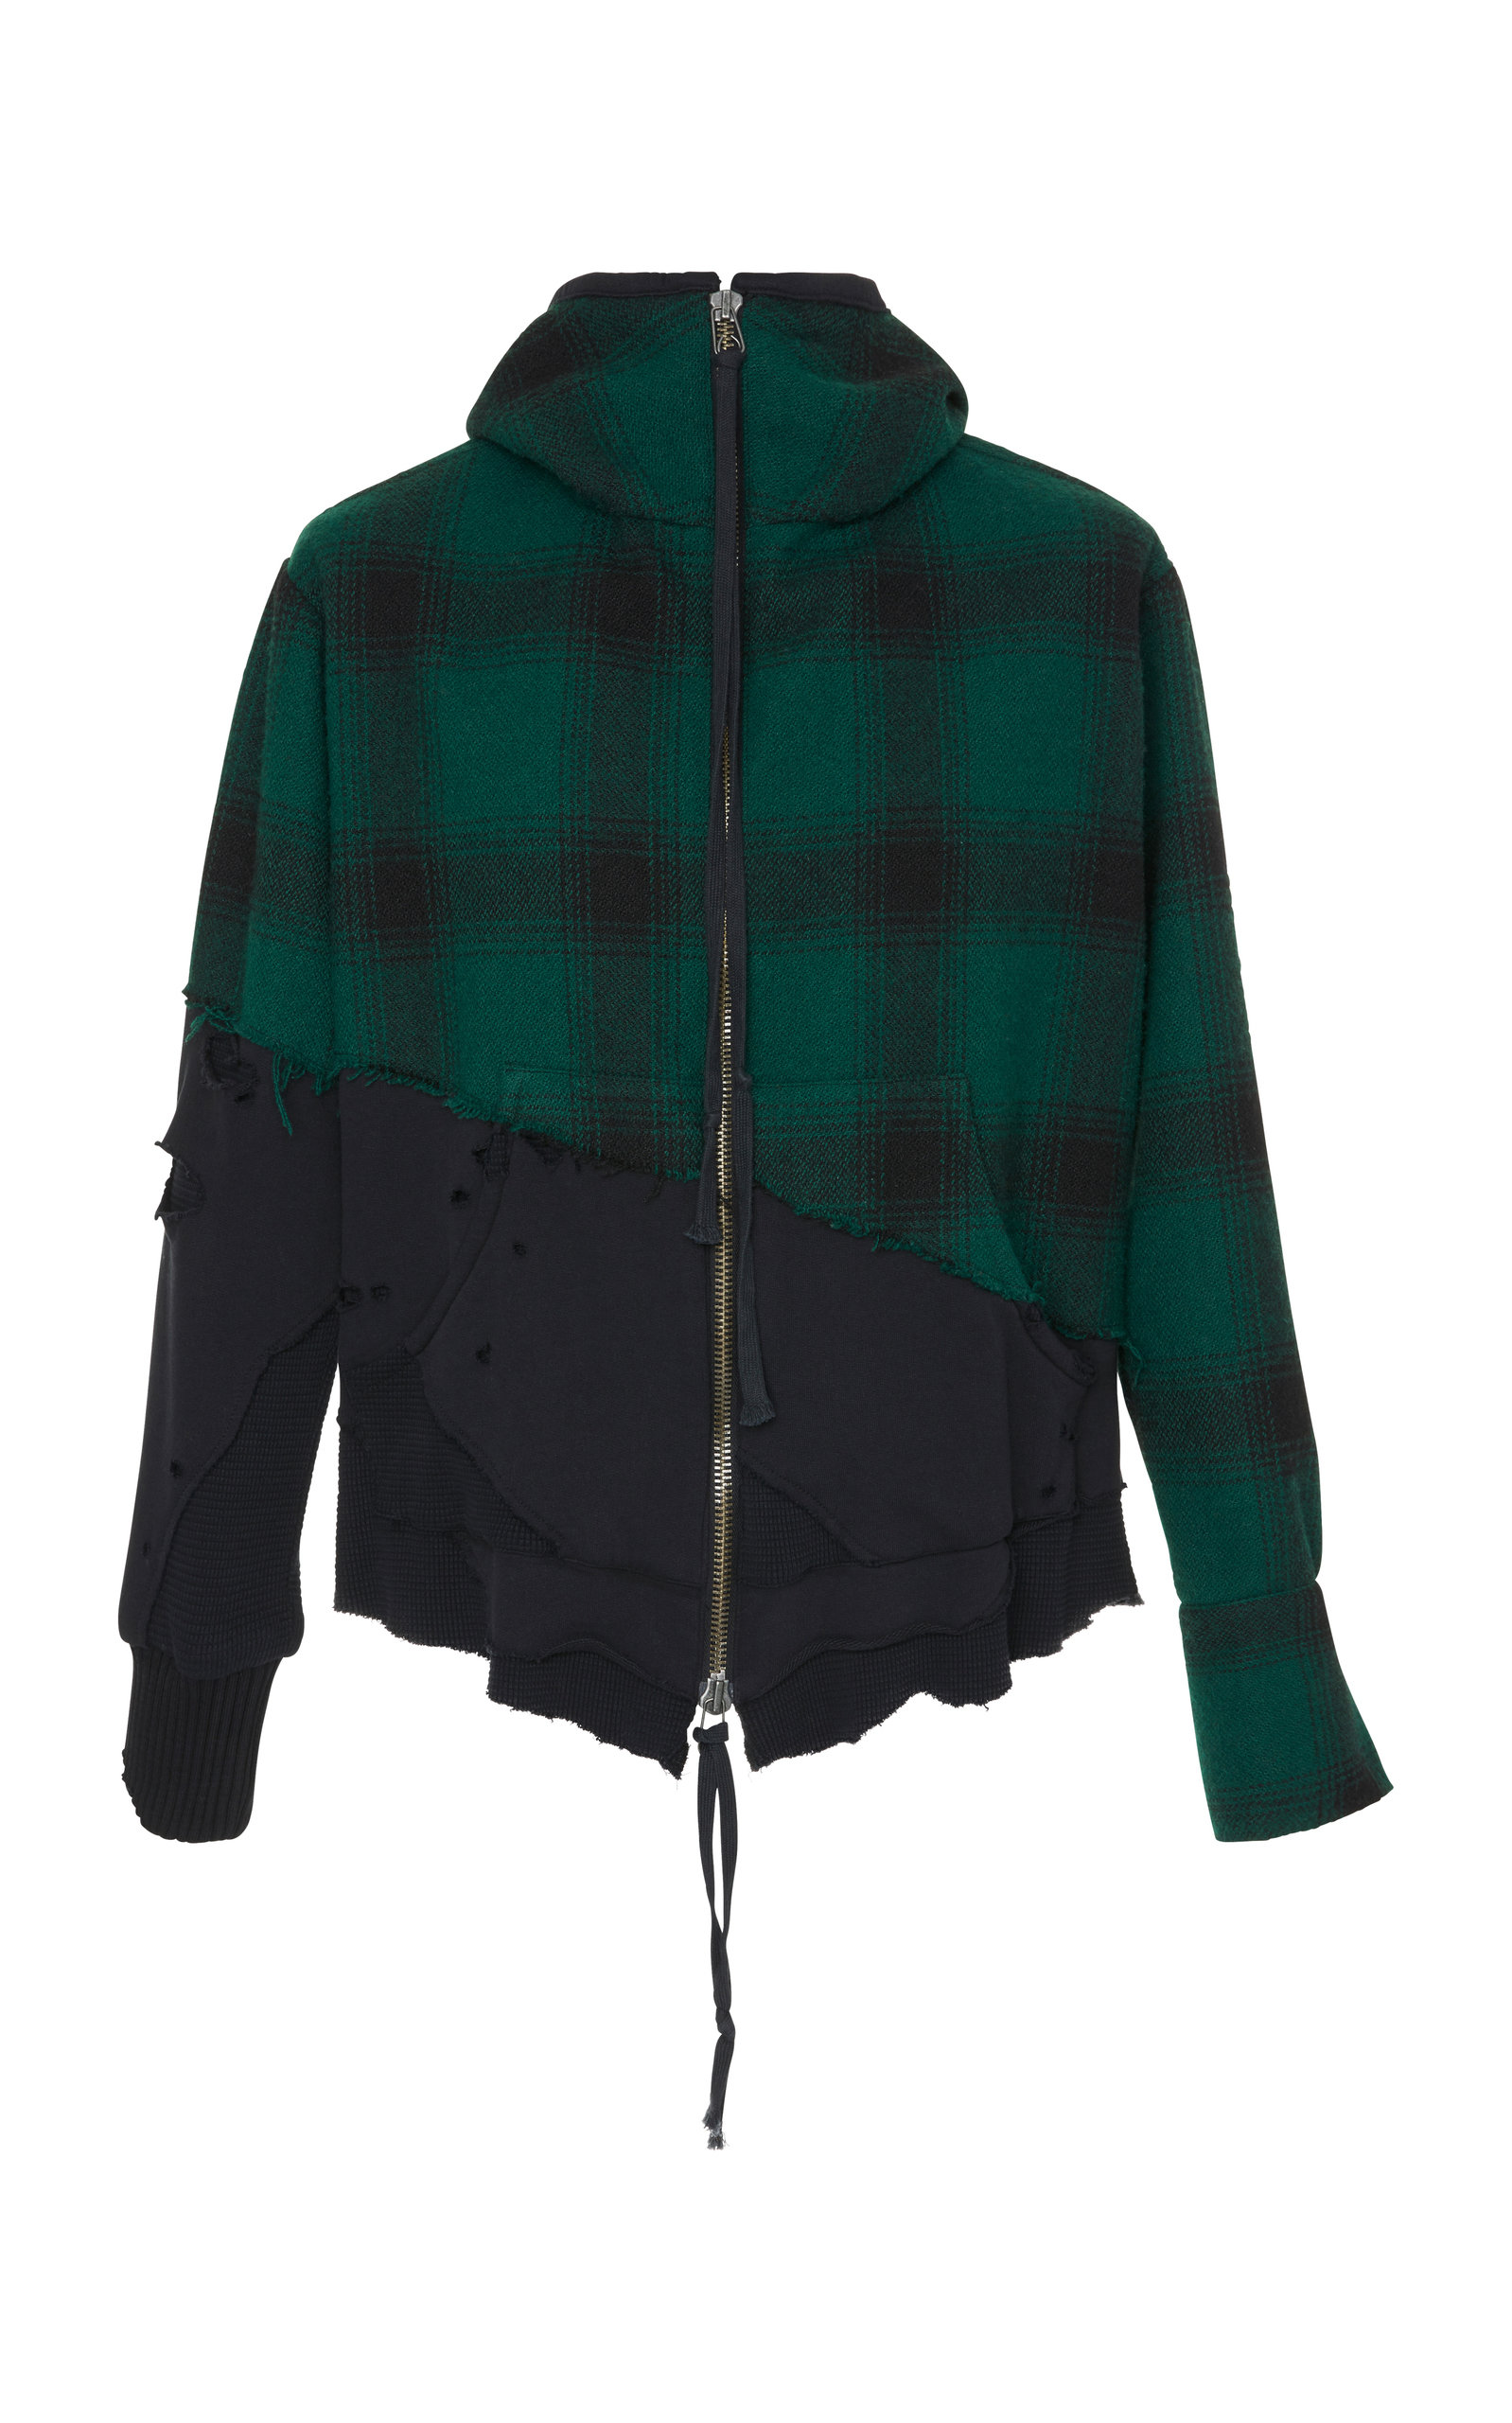 GREG LAUREN DISTRESSED PLAID WOOL AND COTTON-JERSEY HOODED TRACK JACKET